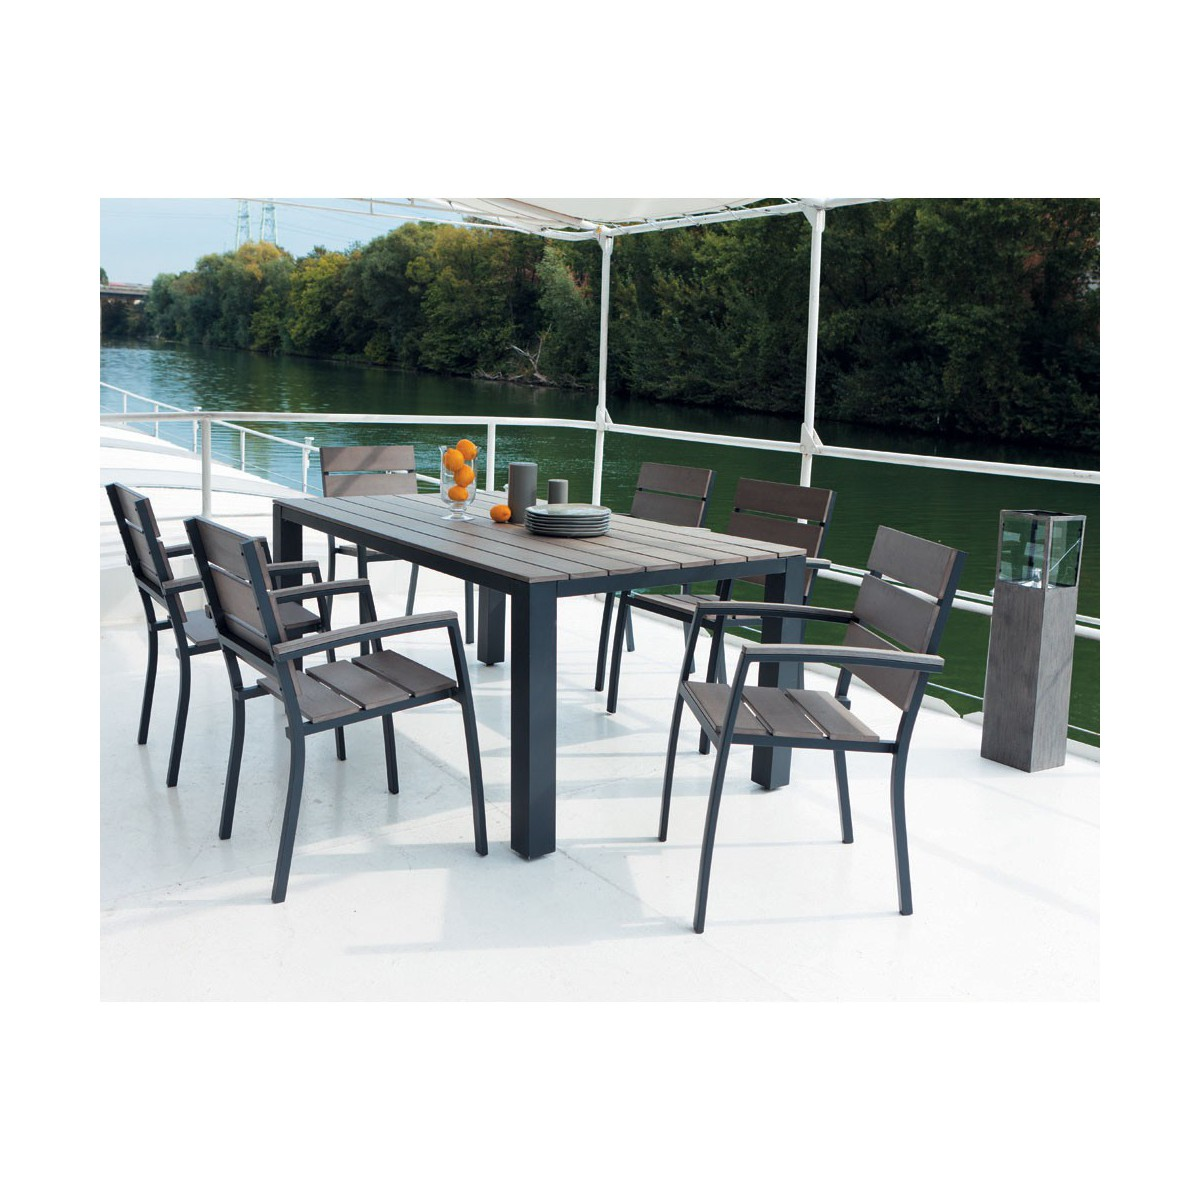 Table De Jardin Imitation Bois | Promotion Carrefour Table De Jardin ...